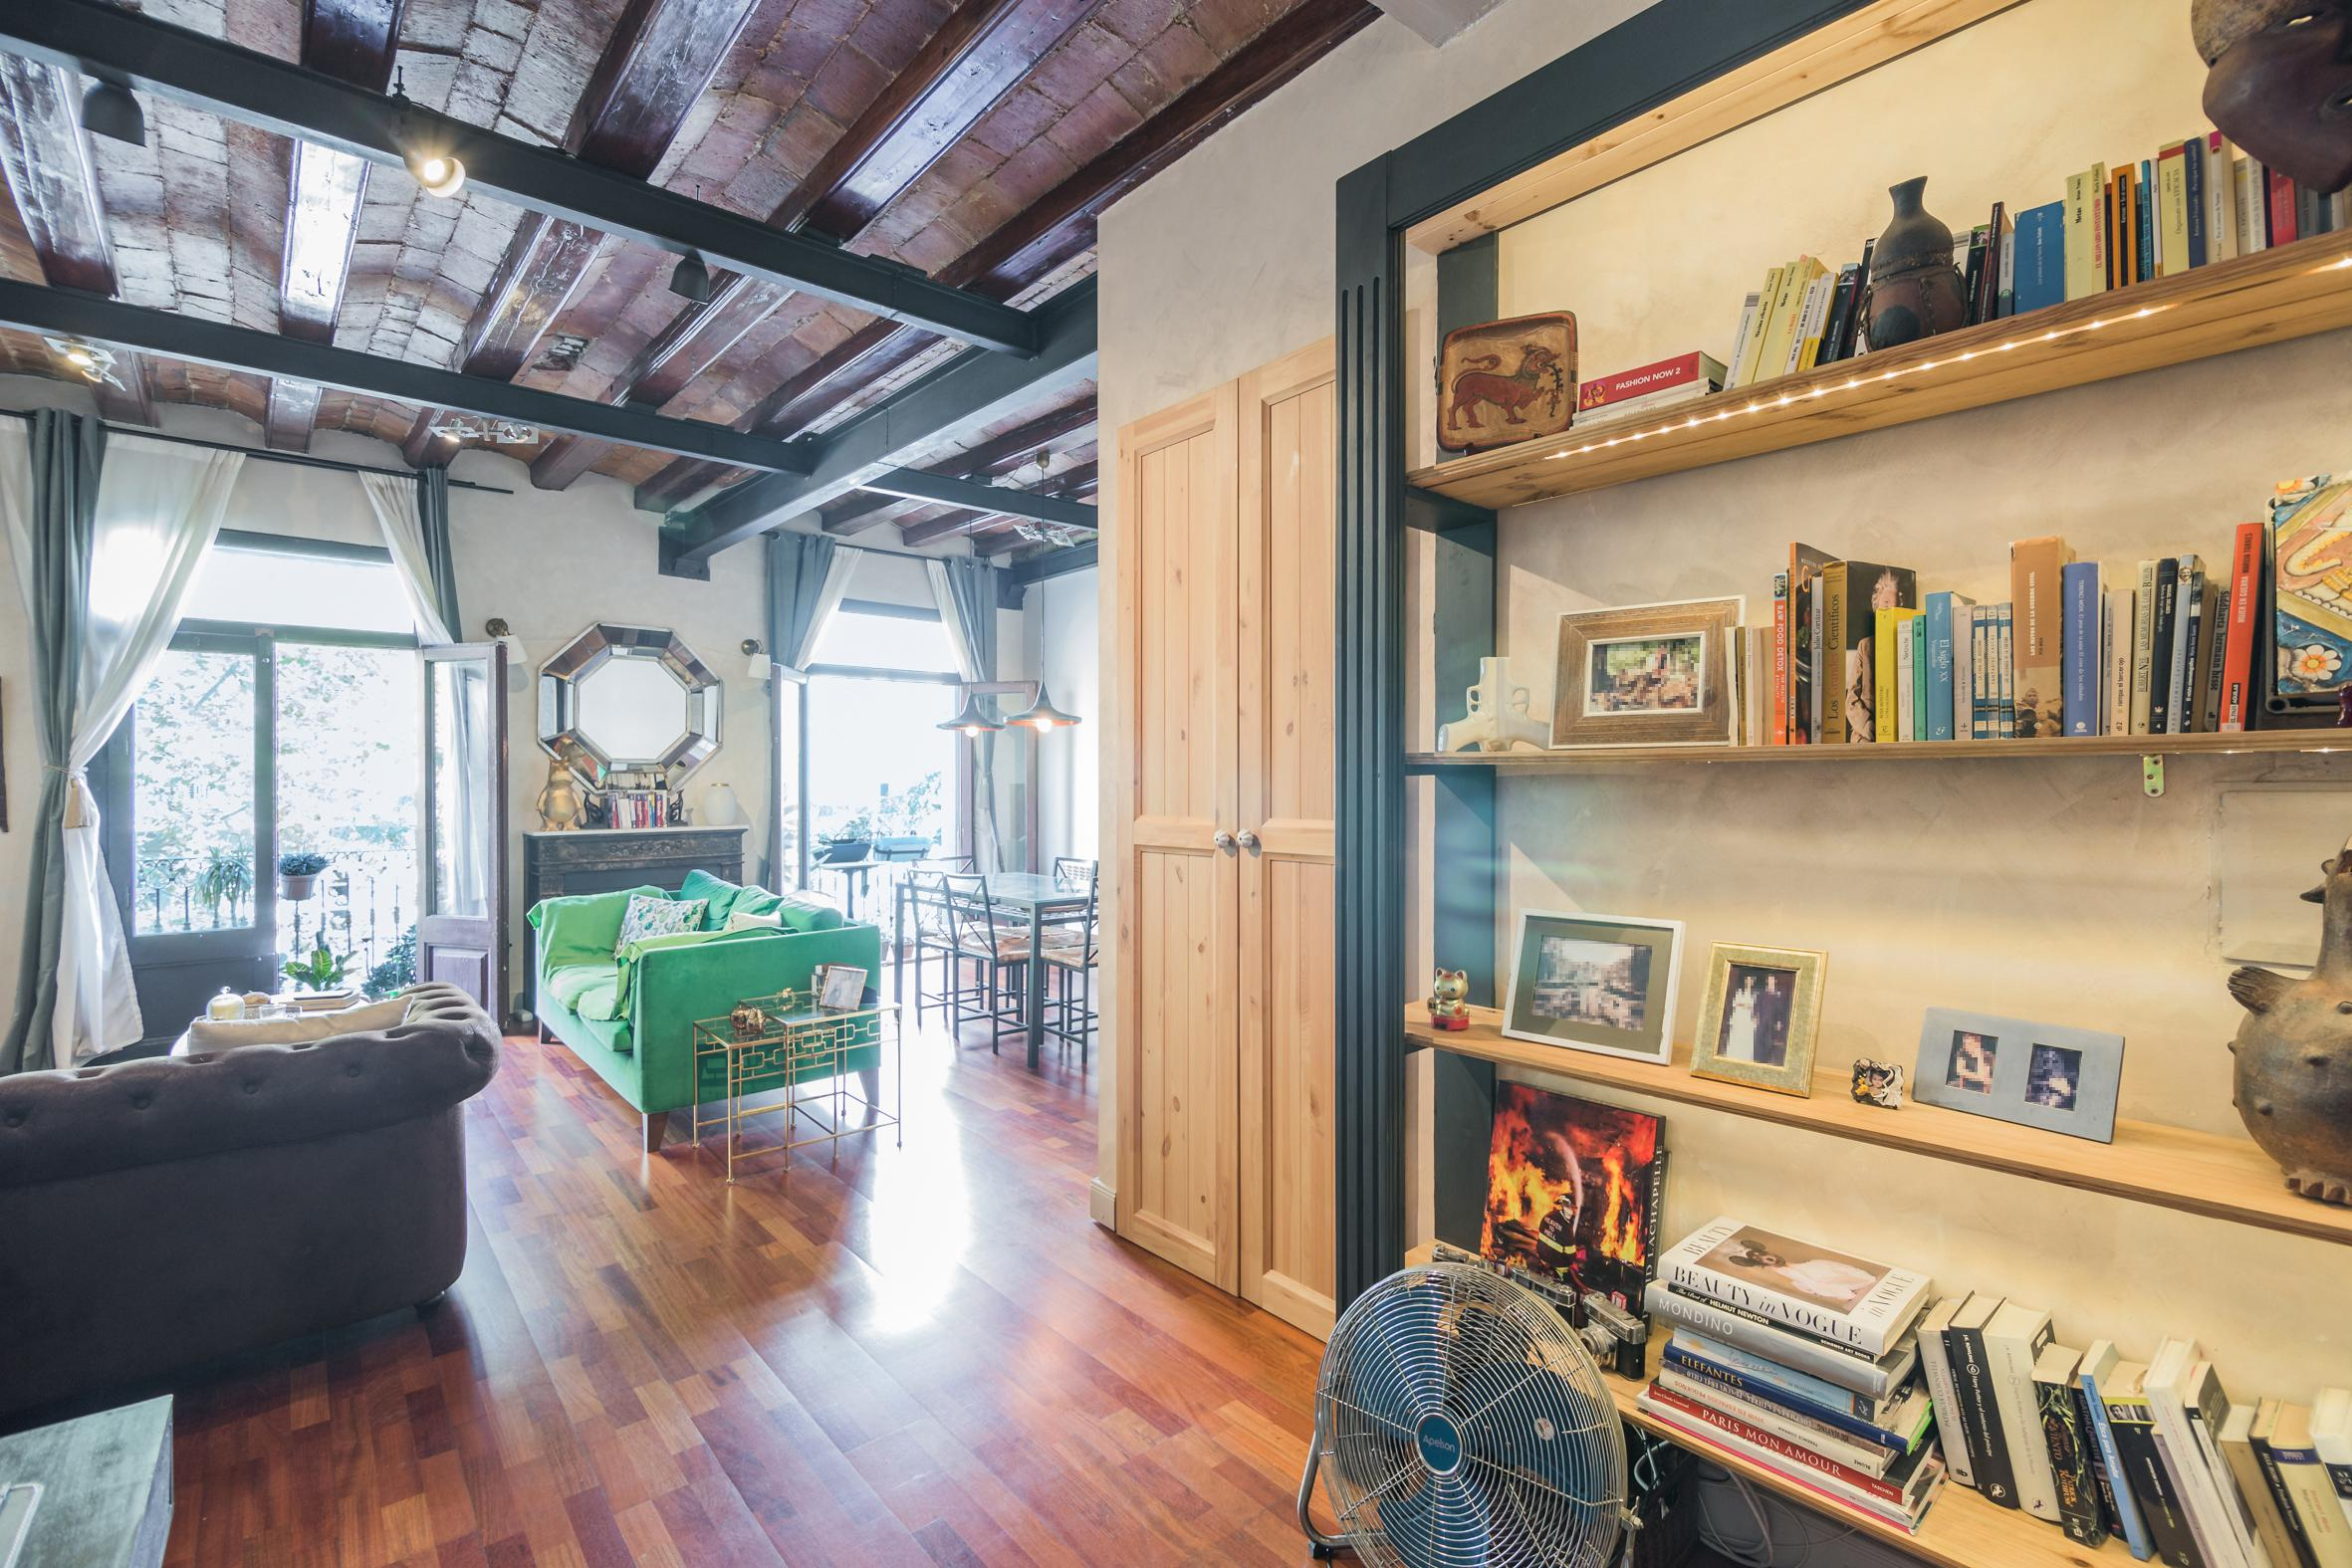 190832 Loft for sale in Ciutat Vella, St. Pere St. Caterina and La Ribera 2